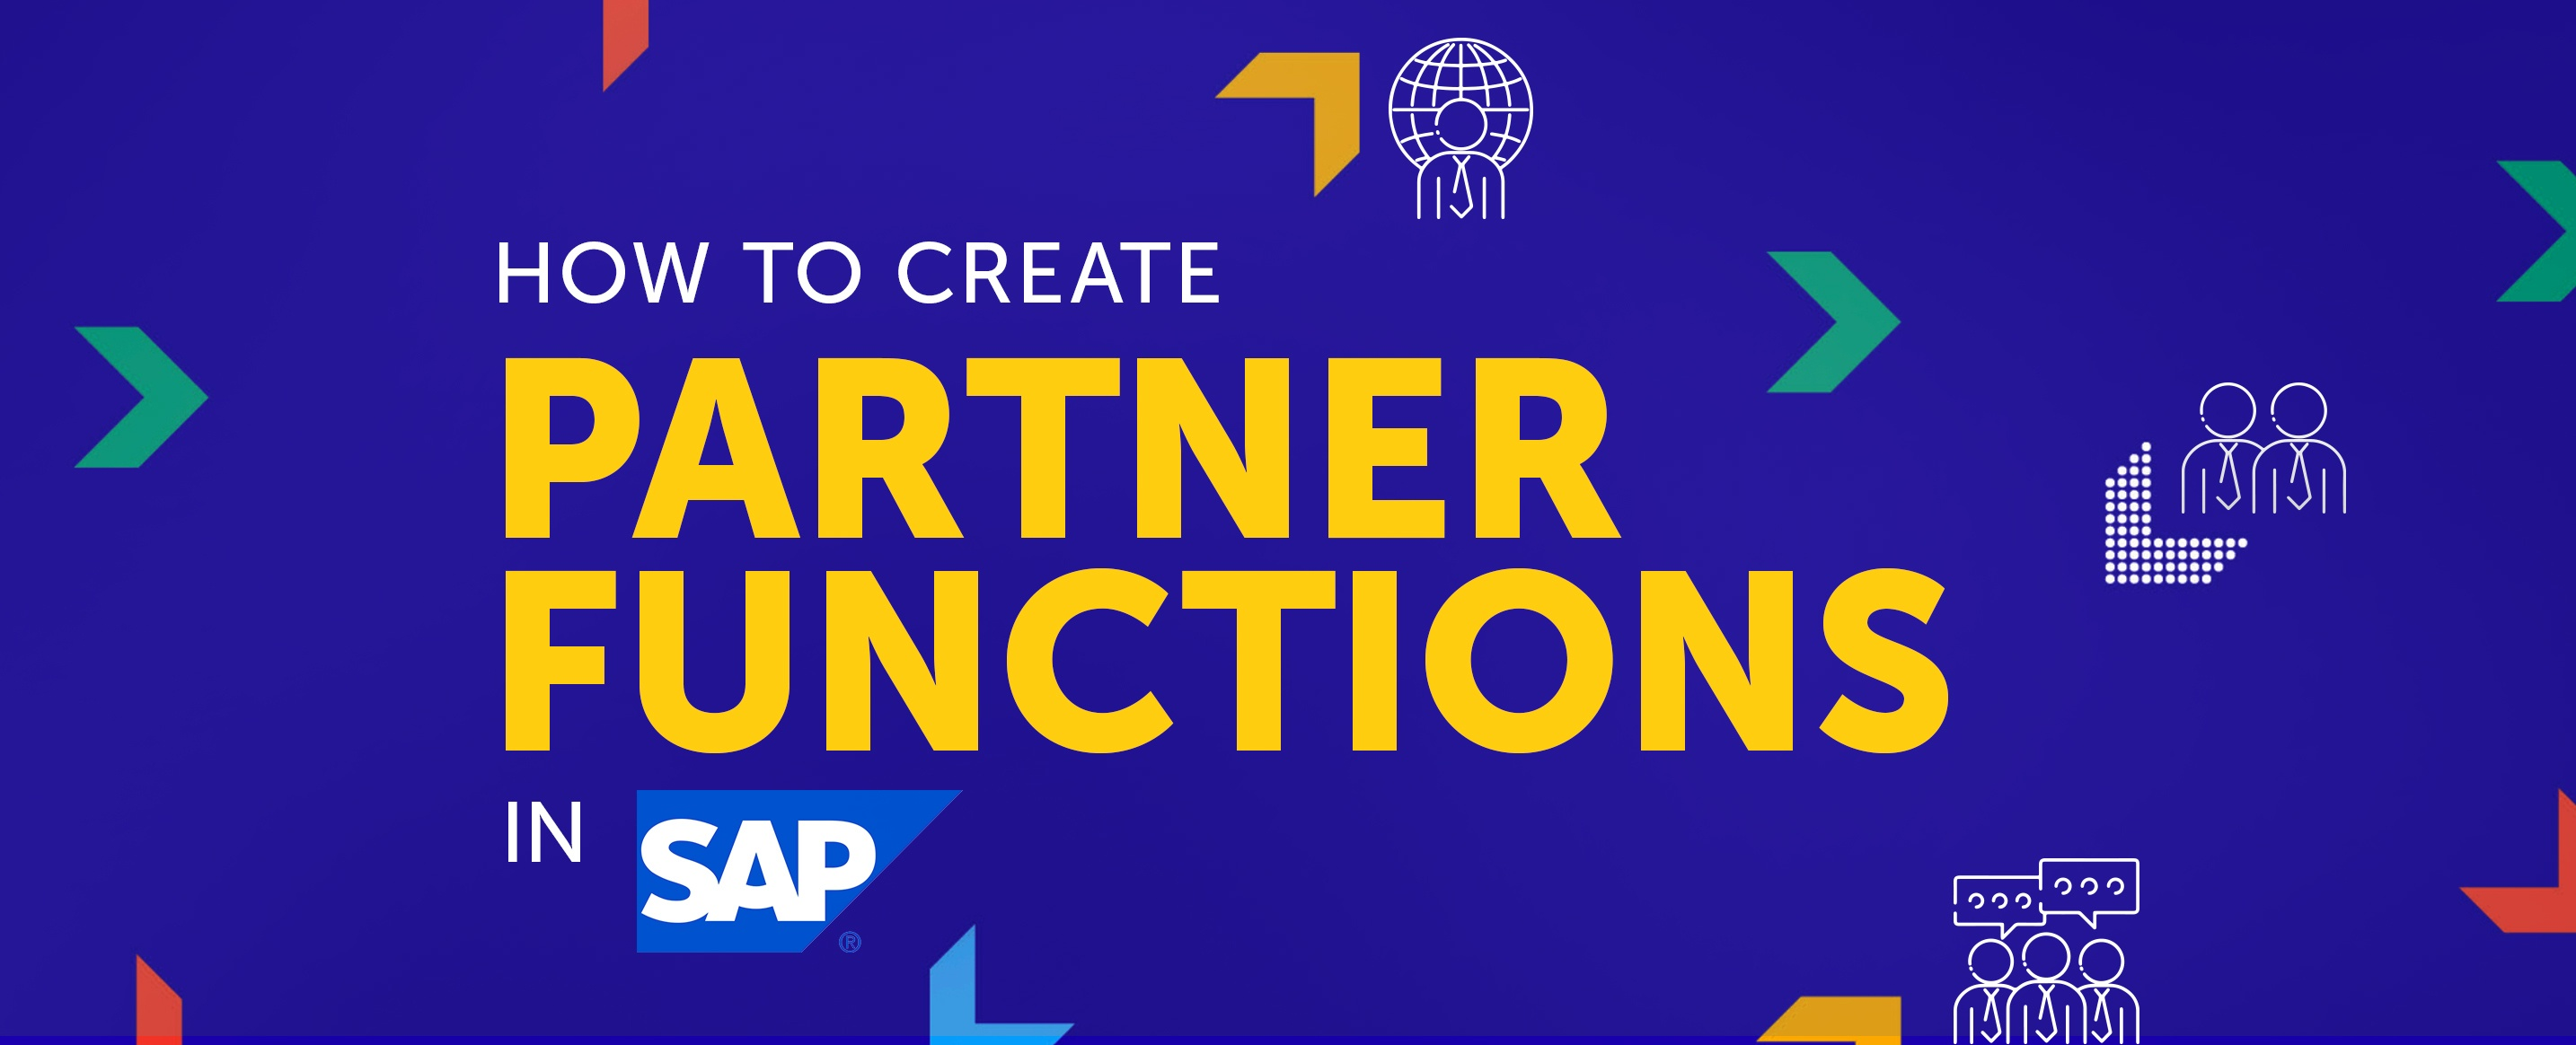 How-to-Create-Partner-Functions-in-SAP